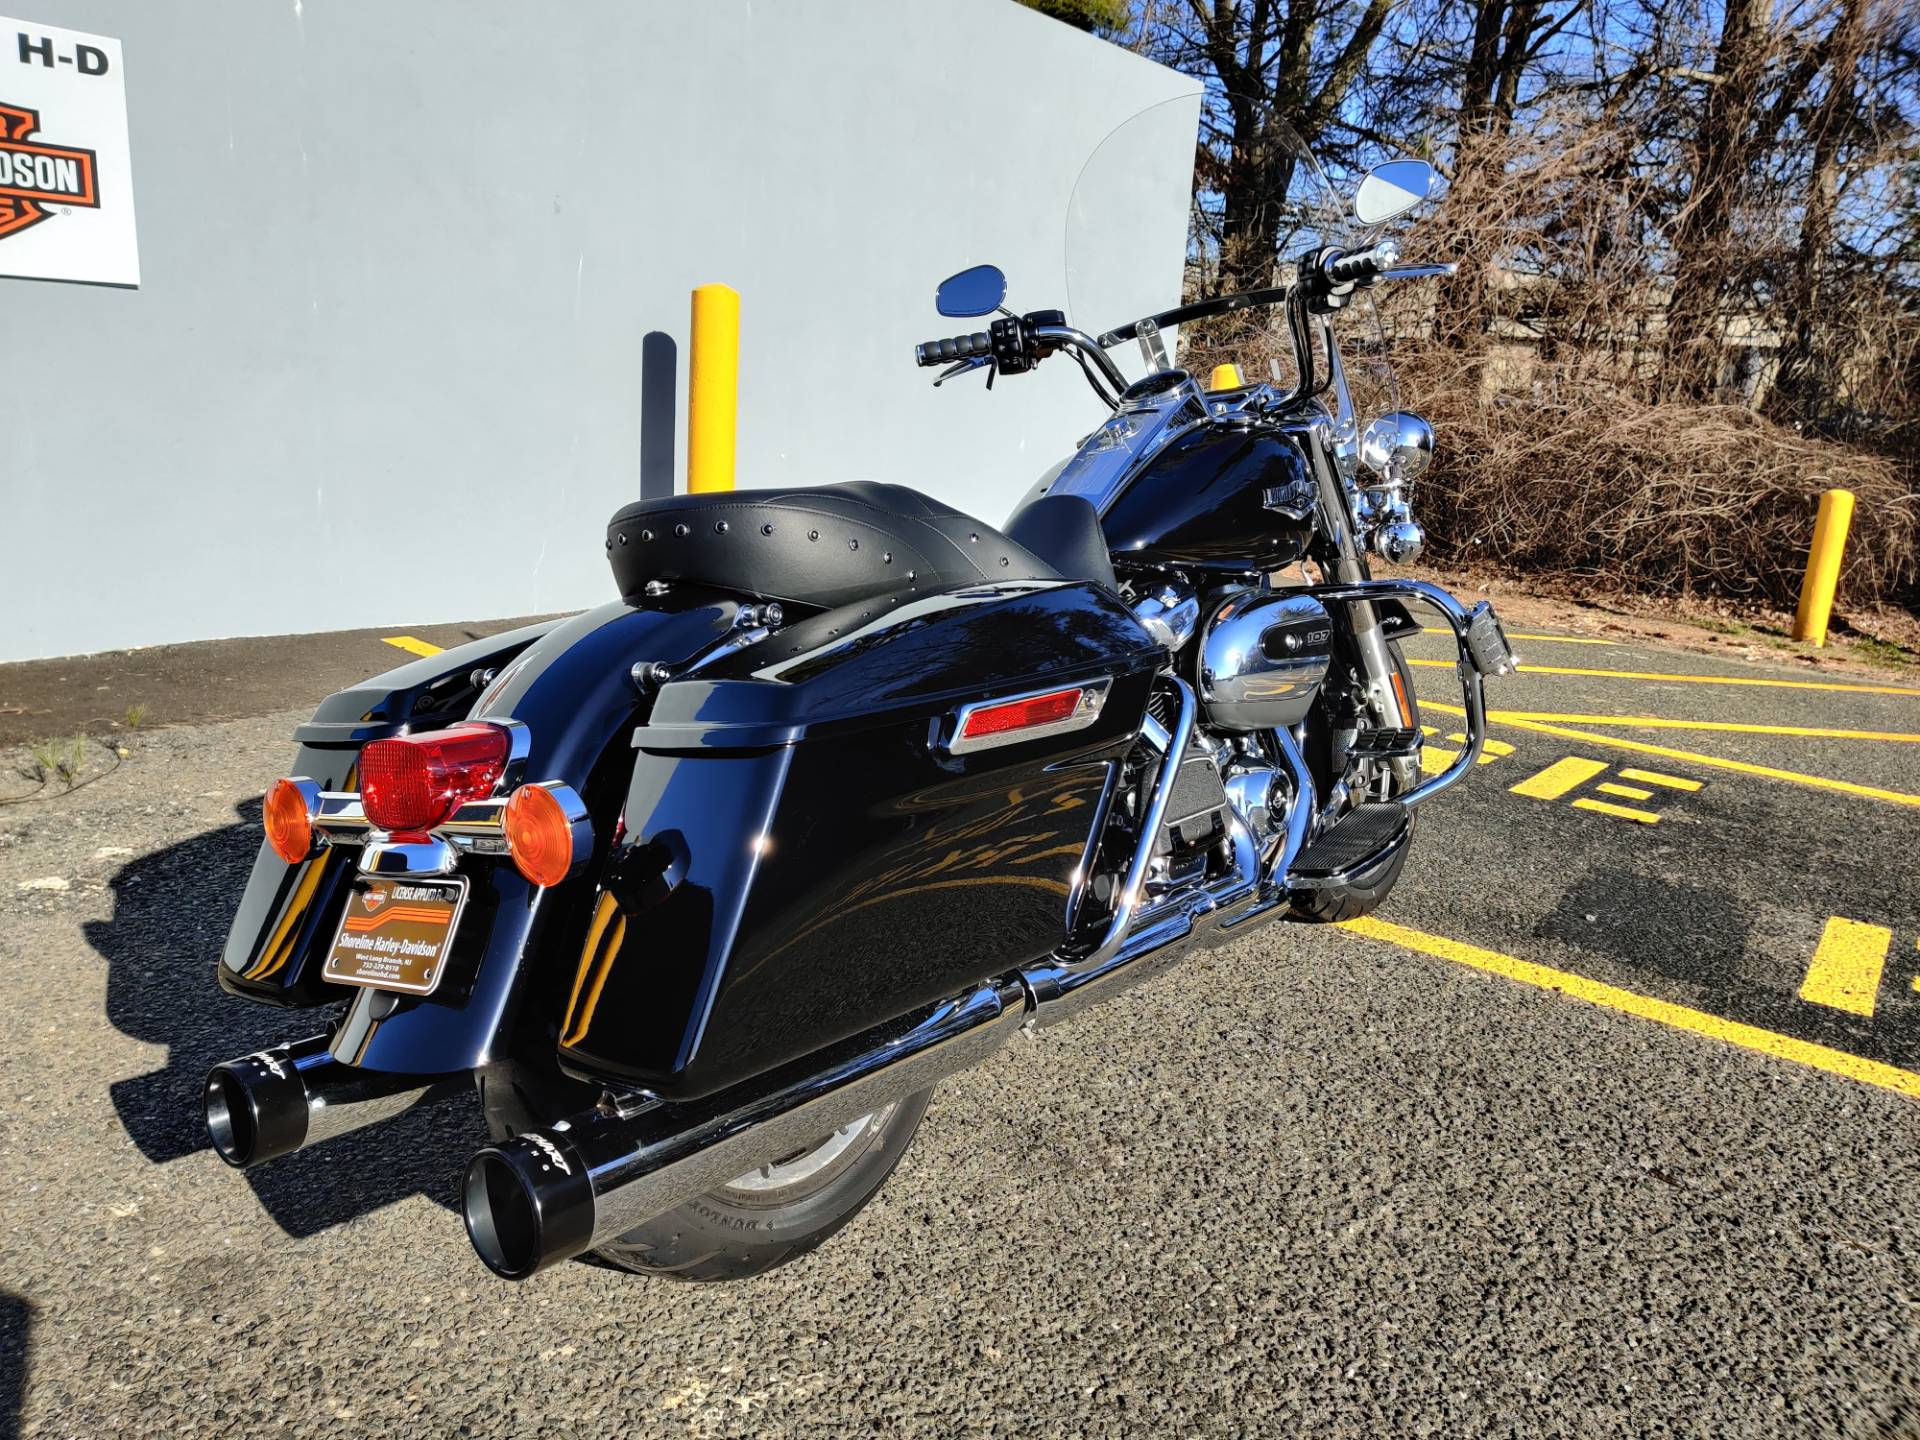 2019 Harley-Davidson Road King in West Long Branch, New Jersey - Photo 8